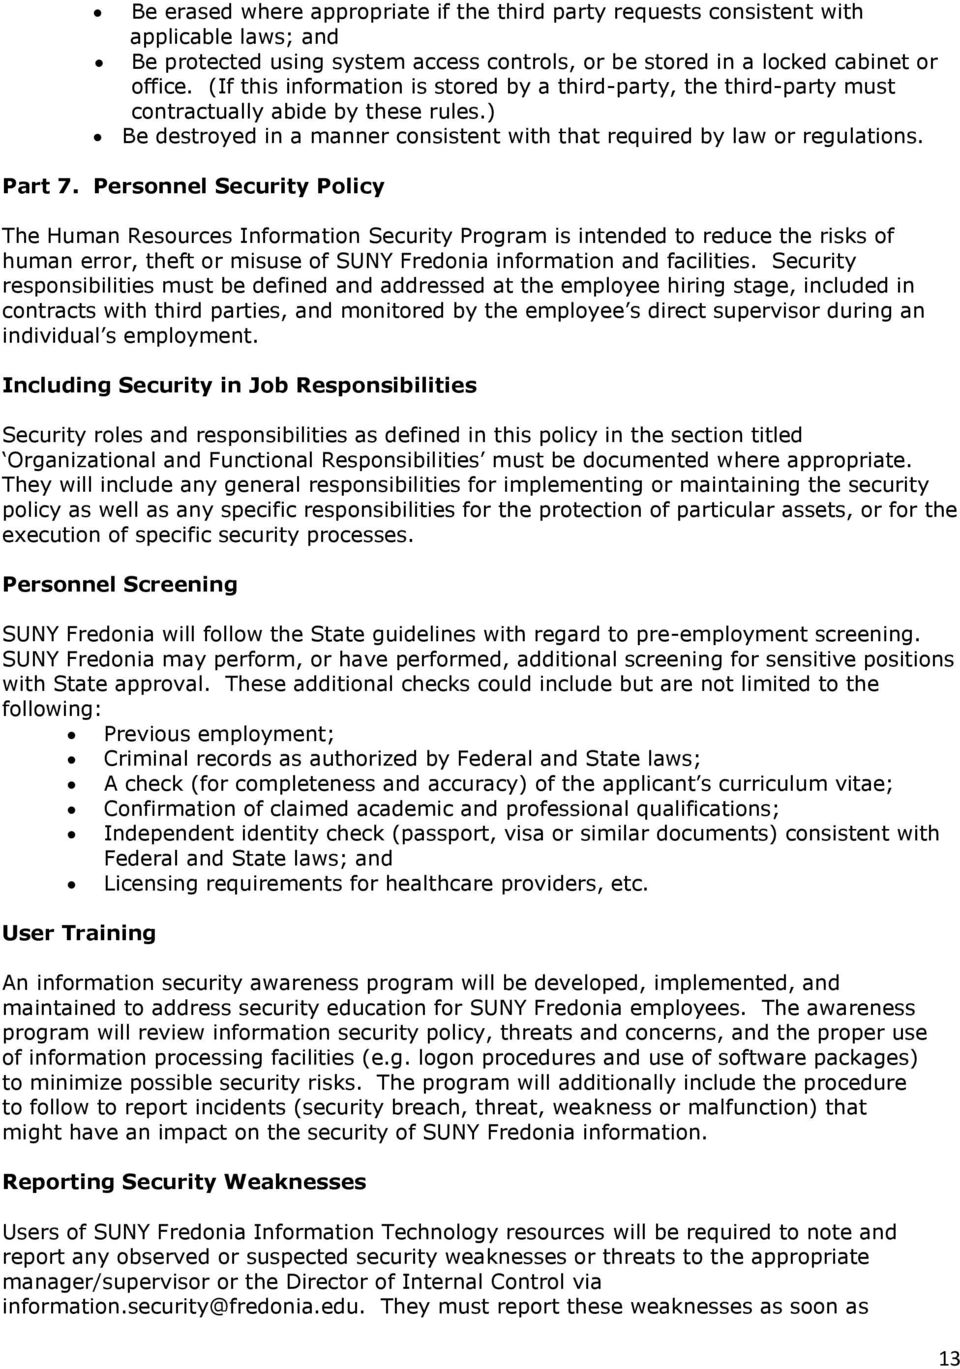 Personnel Security Policy The Human Resources Information Security Program is intended to reduce the risks of human error, theft or misuse of SUNY Fredonia information and facilities.